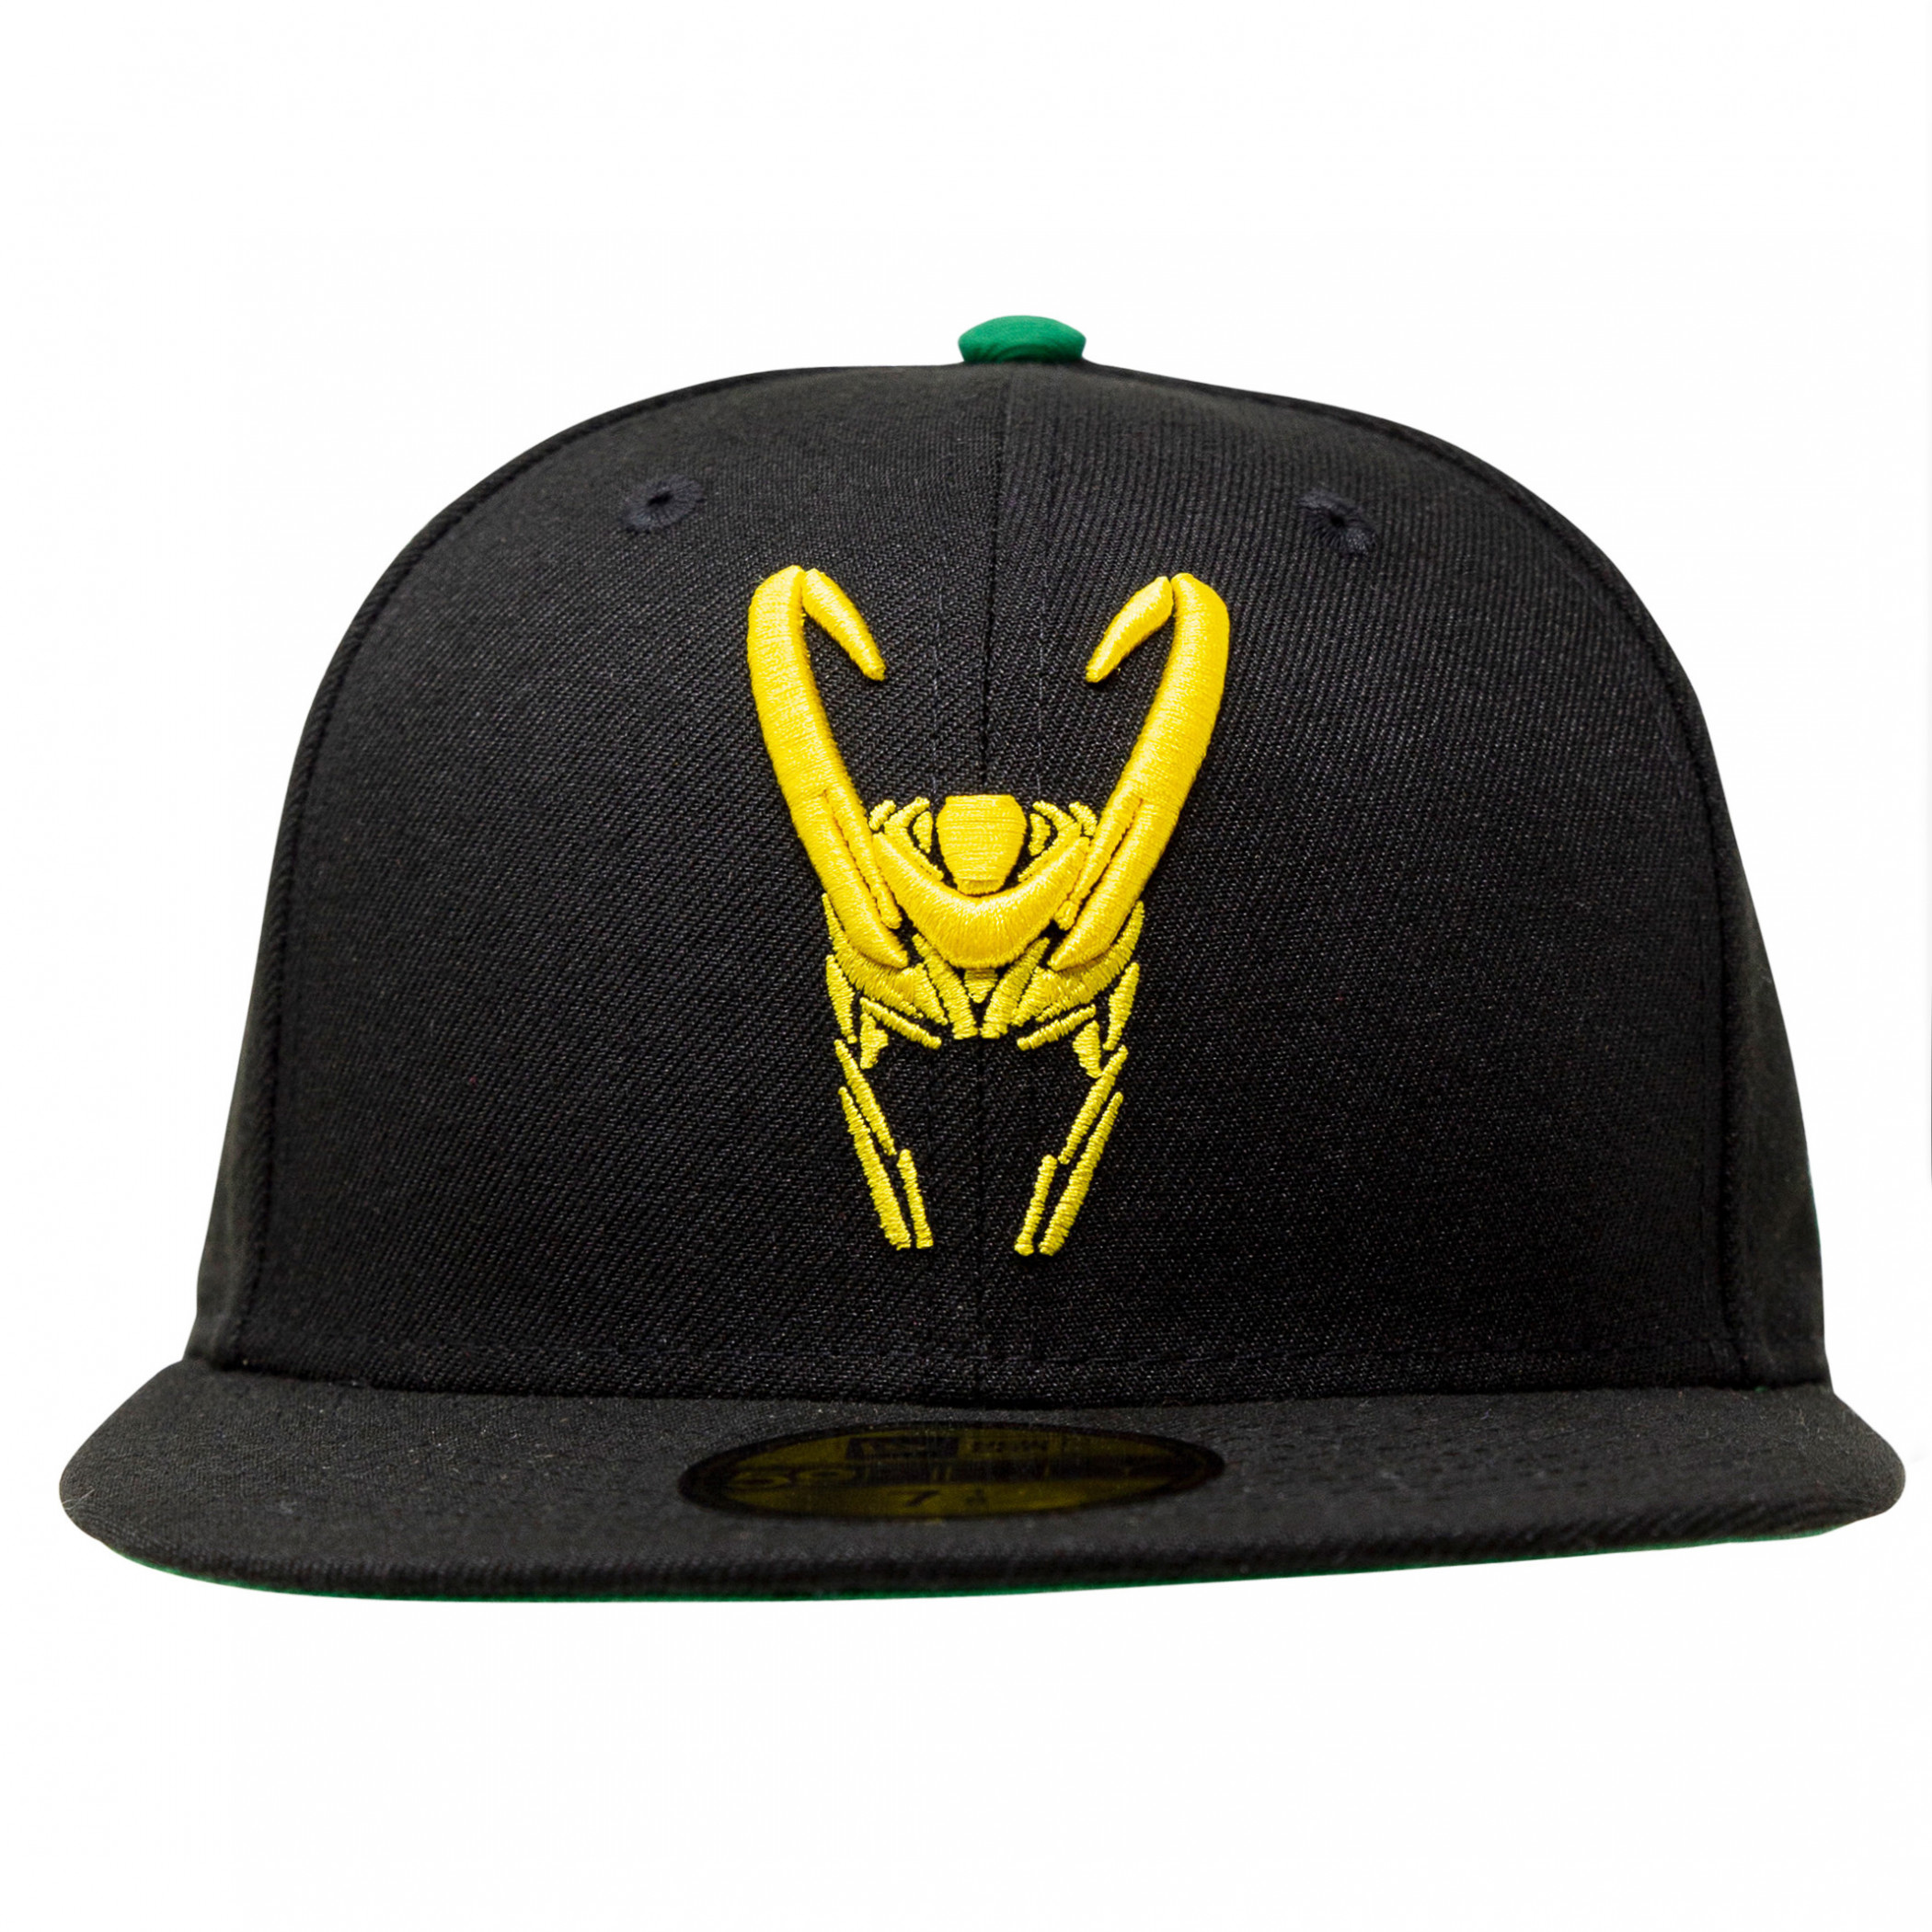 Loki Helmet New Era 59Fifty Fitted Hat